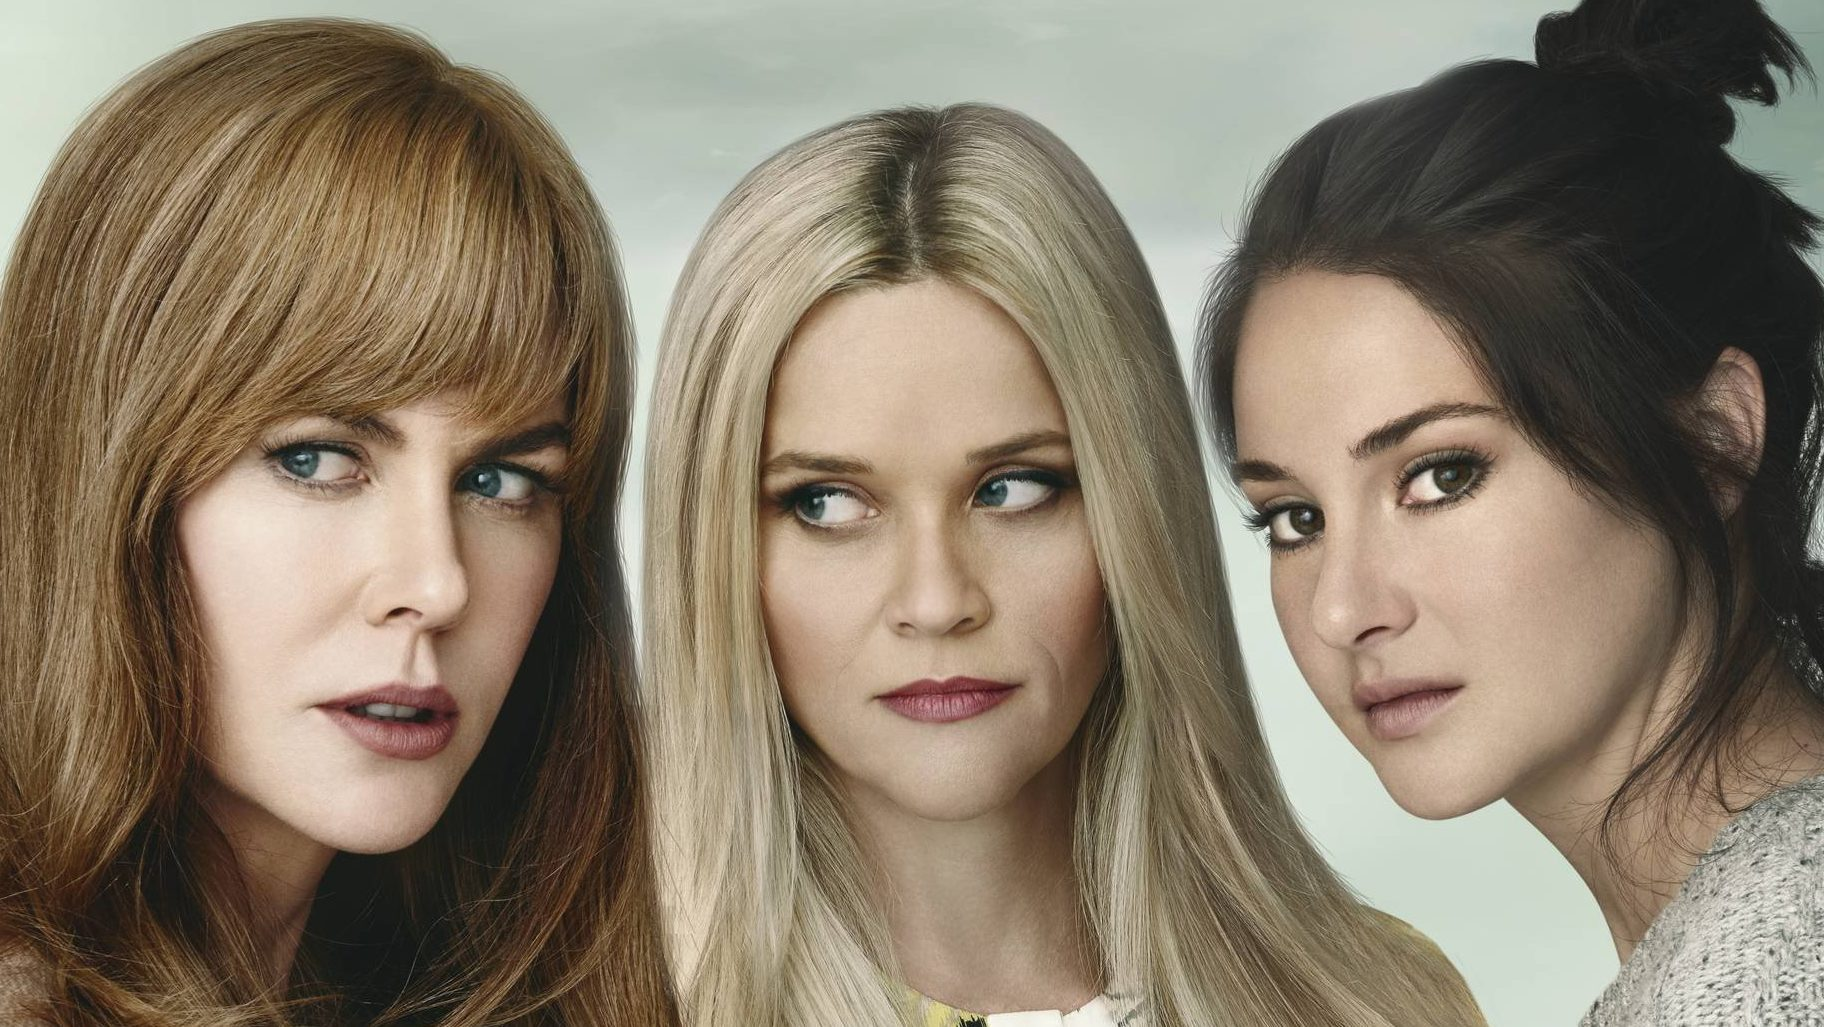 Big Little Lies season 2 coming soon: Meryl Streep signs the script without reading